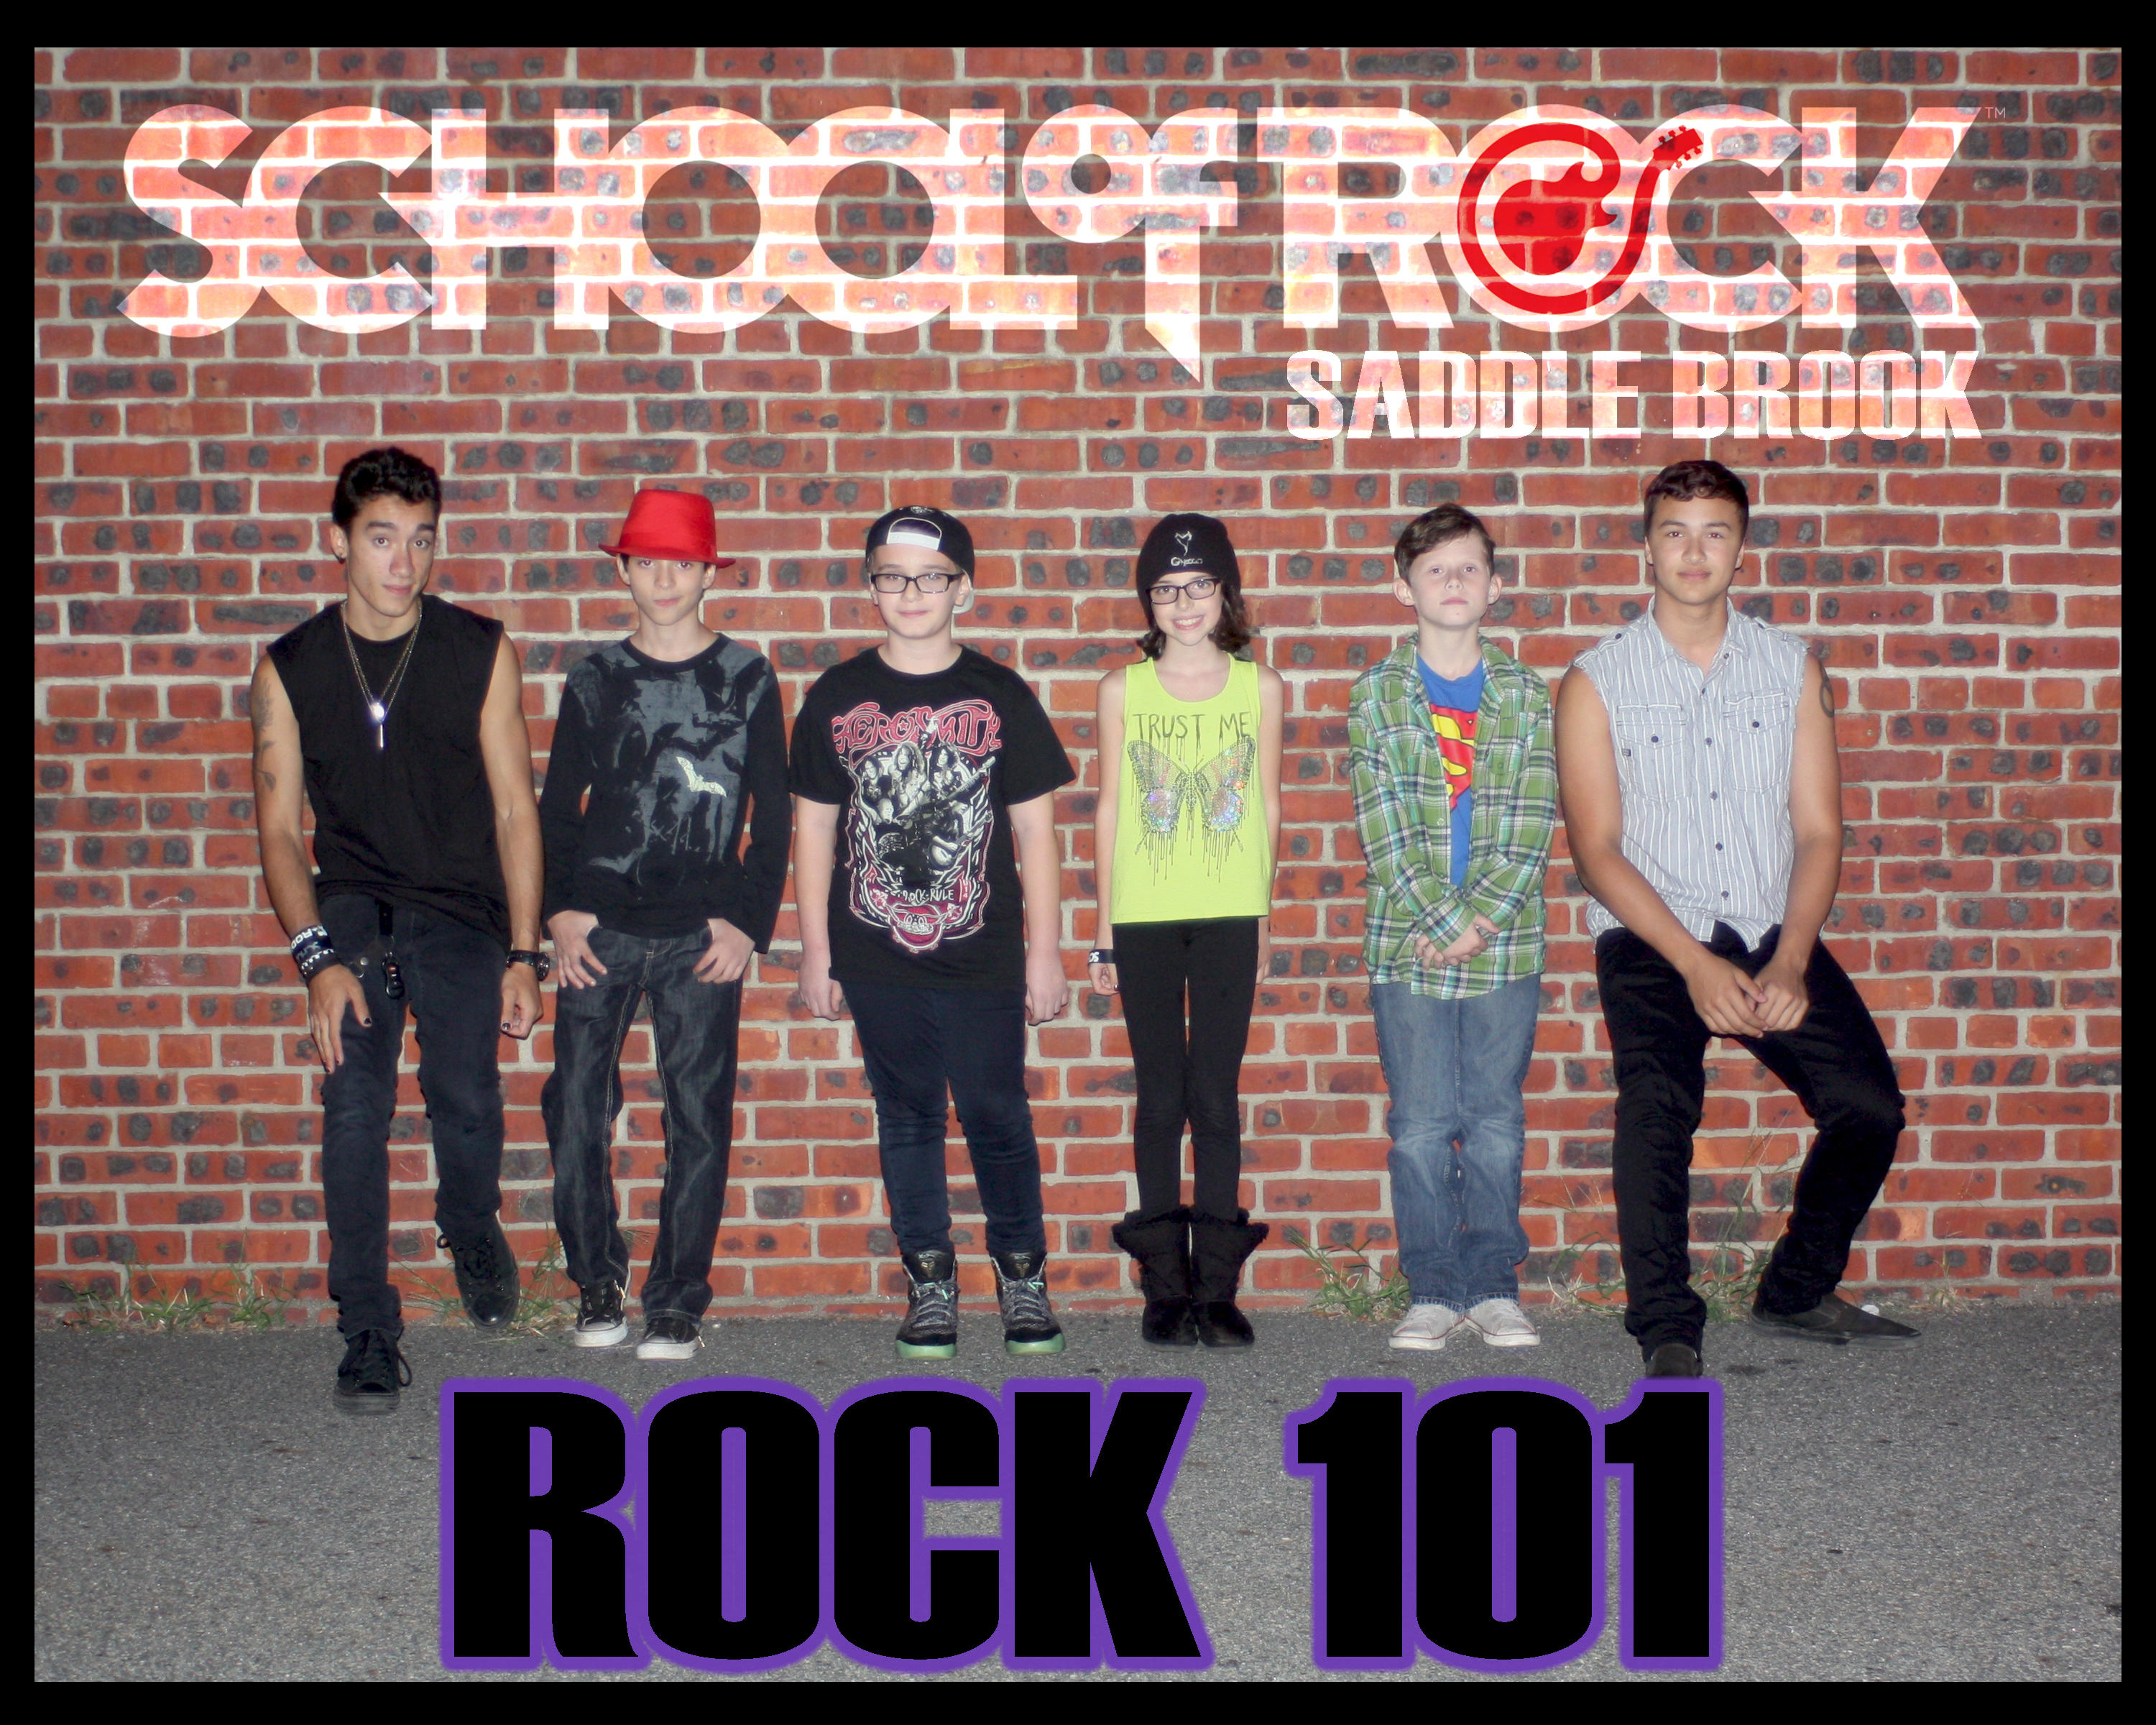 School of Rock Saddle Brook image 3